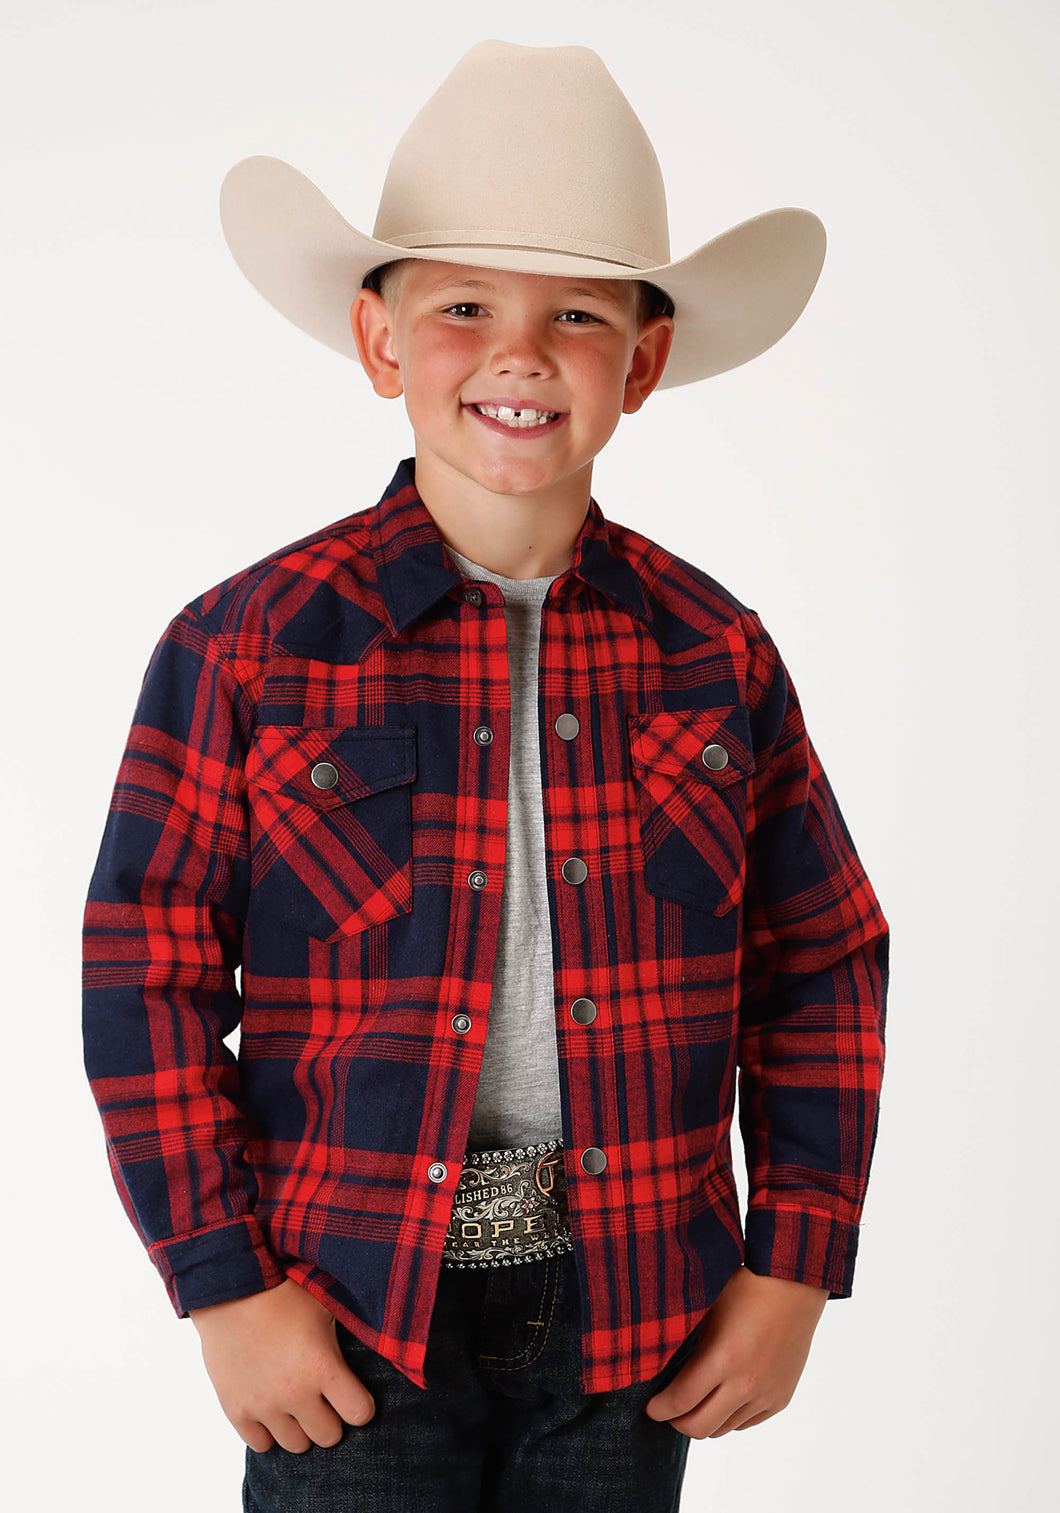 Outer Boys Jacket 1502 Red Plaid Flannel Shirt Jacket